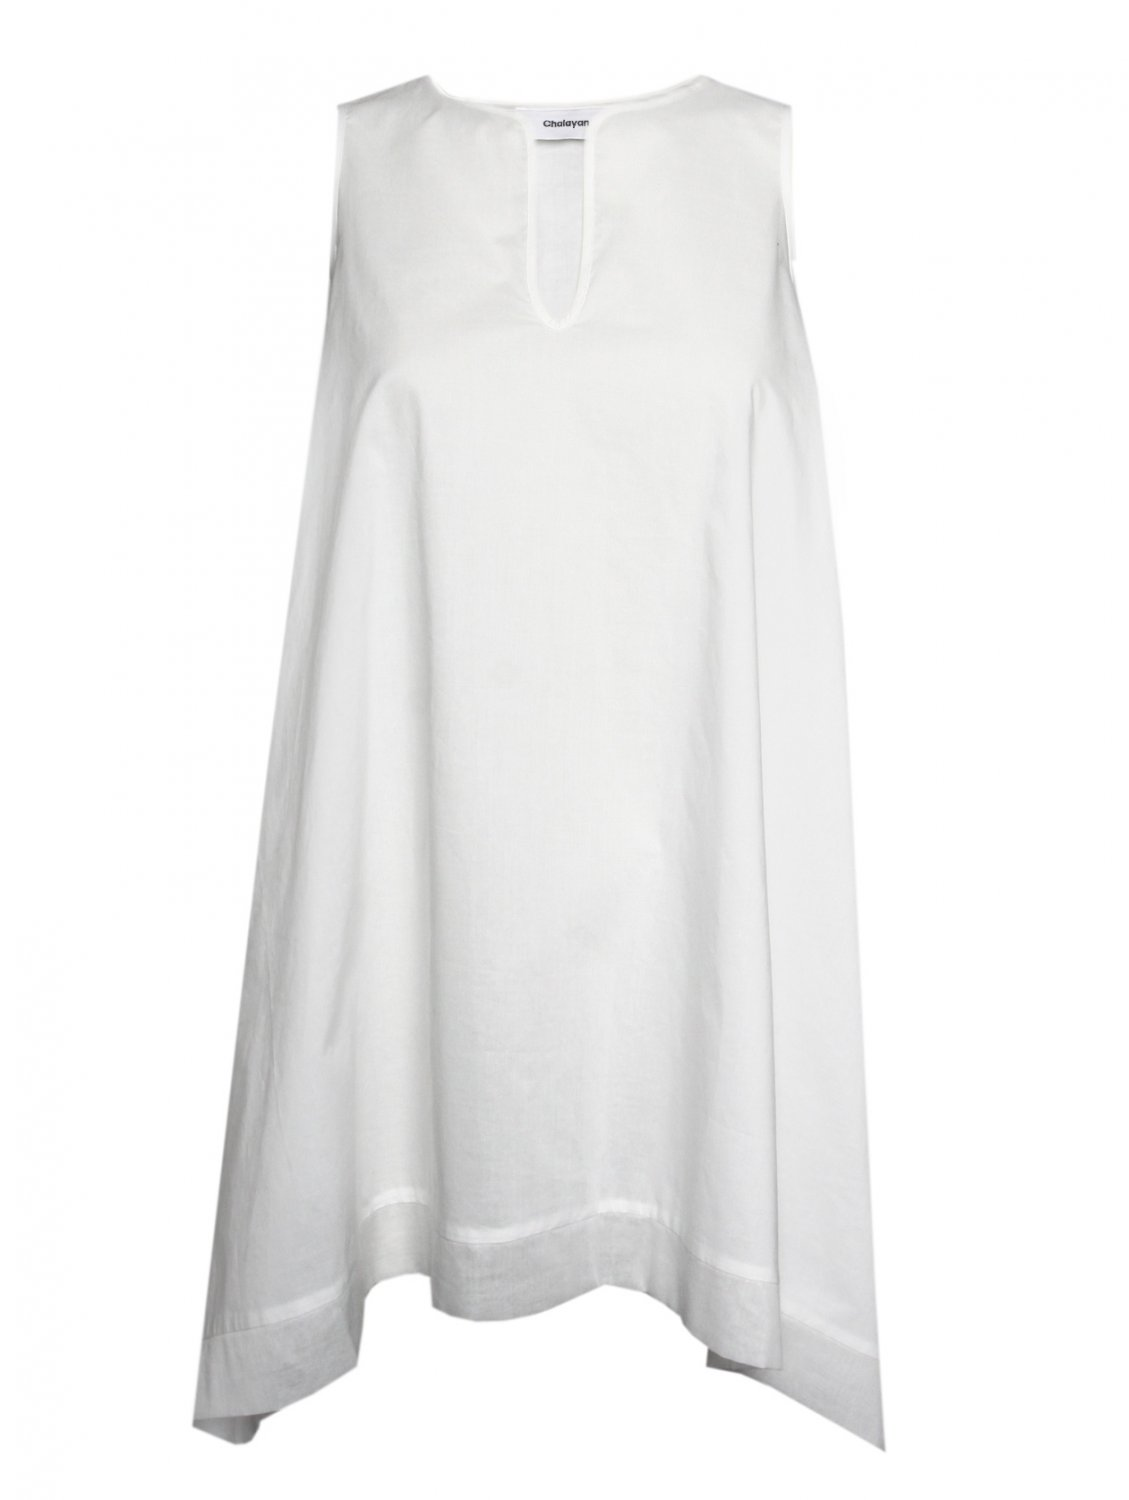 Hussein chalayan Hanky Tunic Dress White in White | Lyst